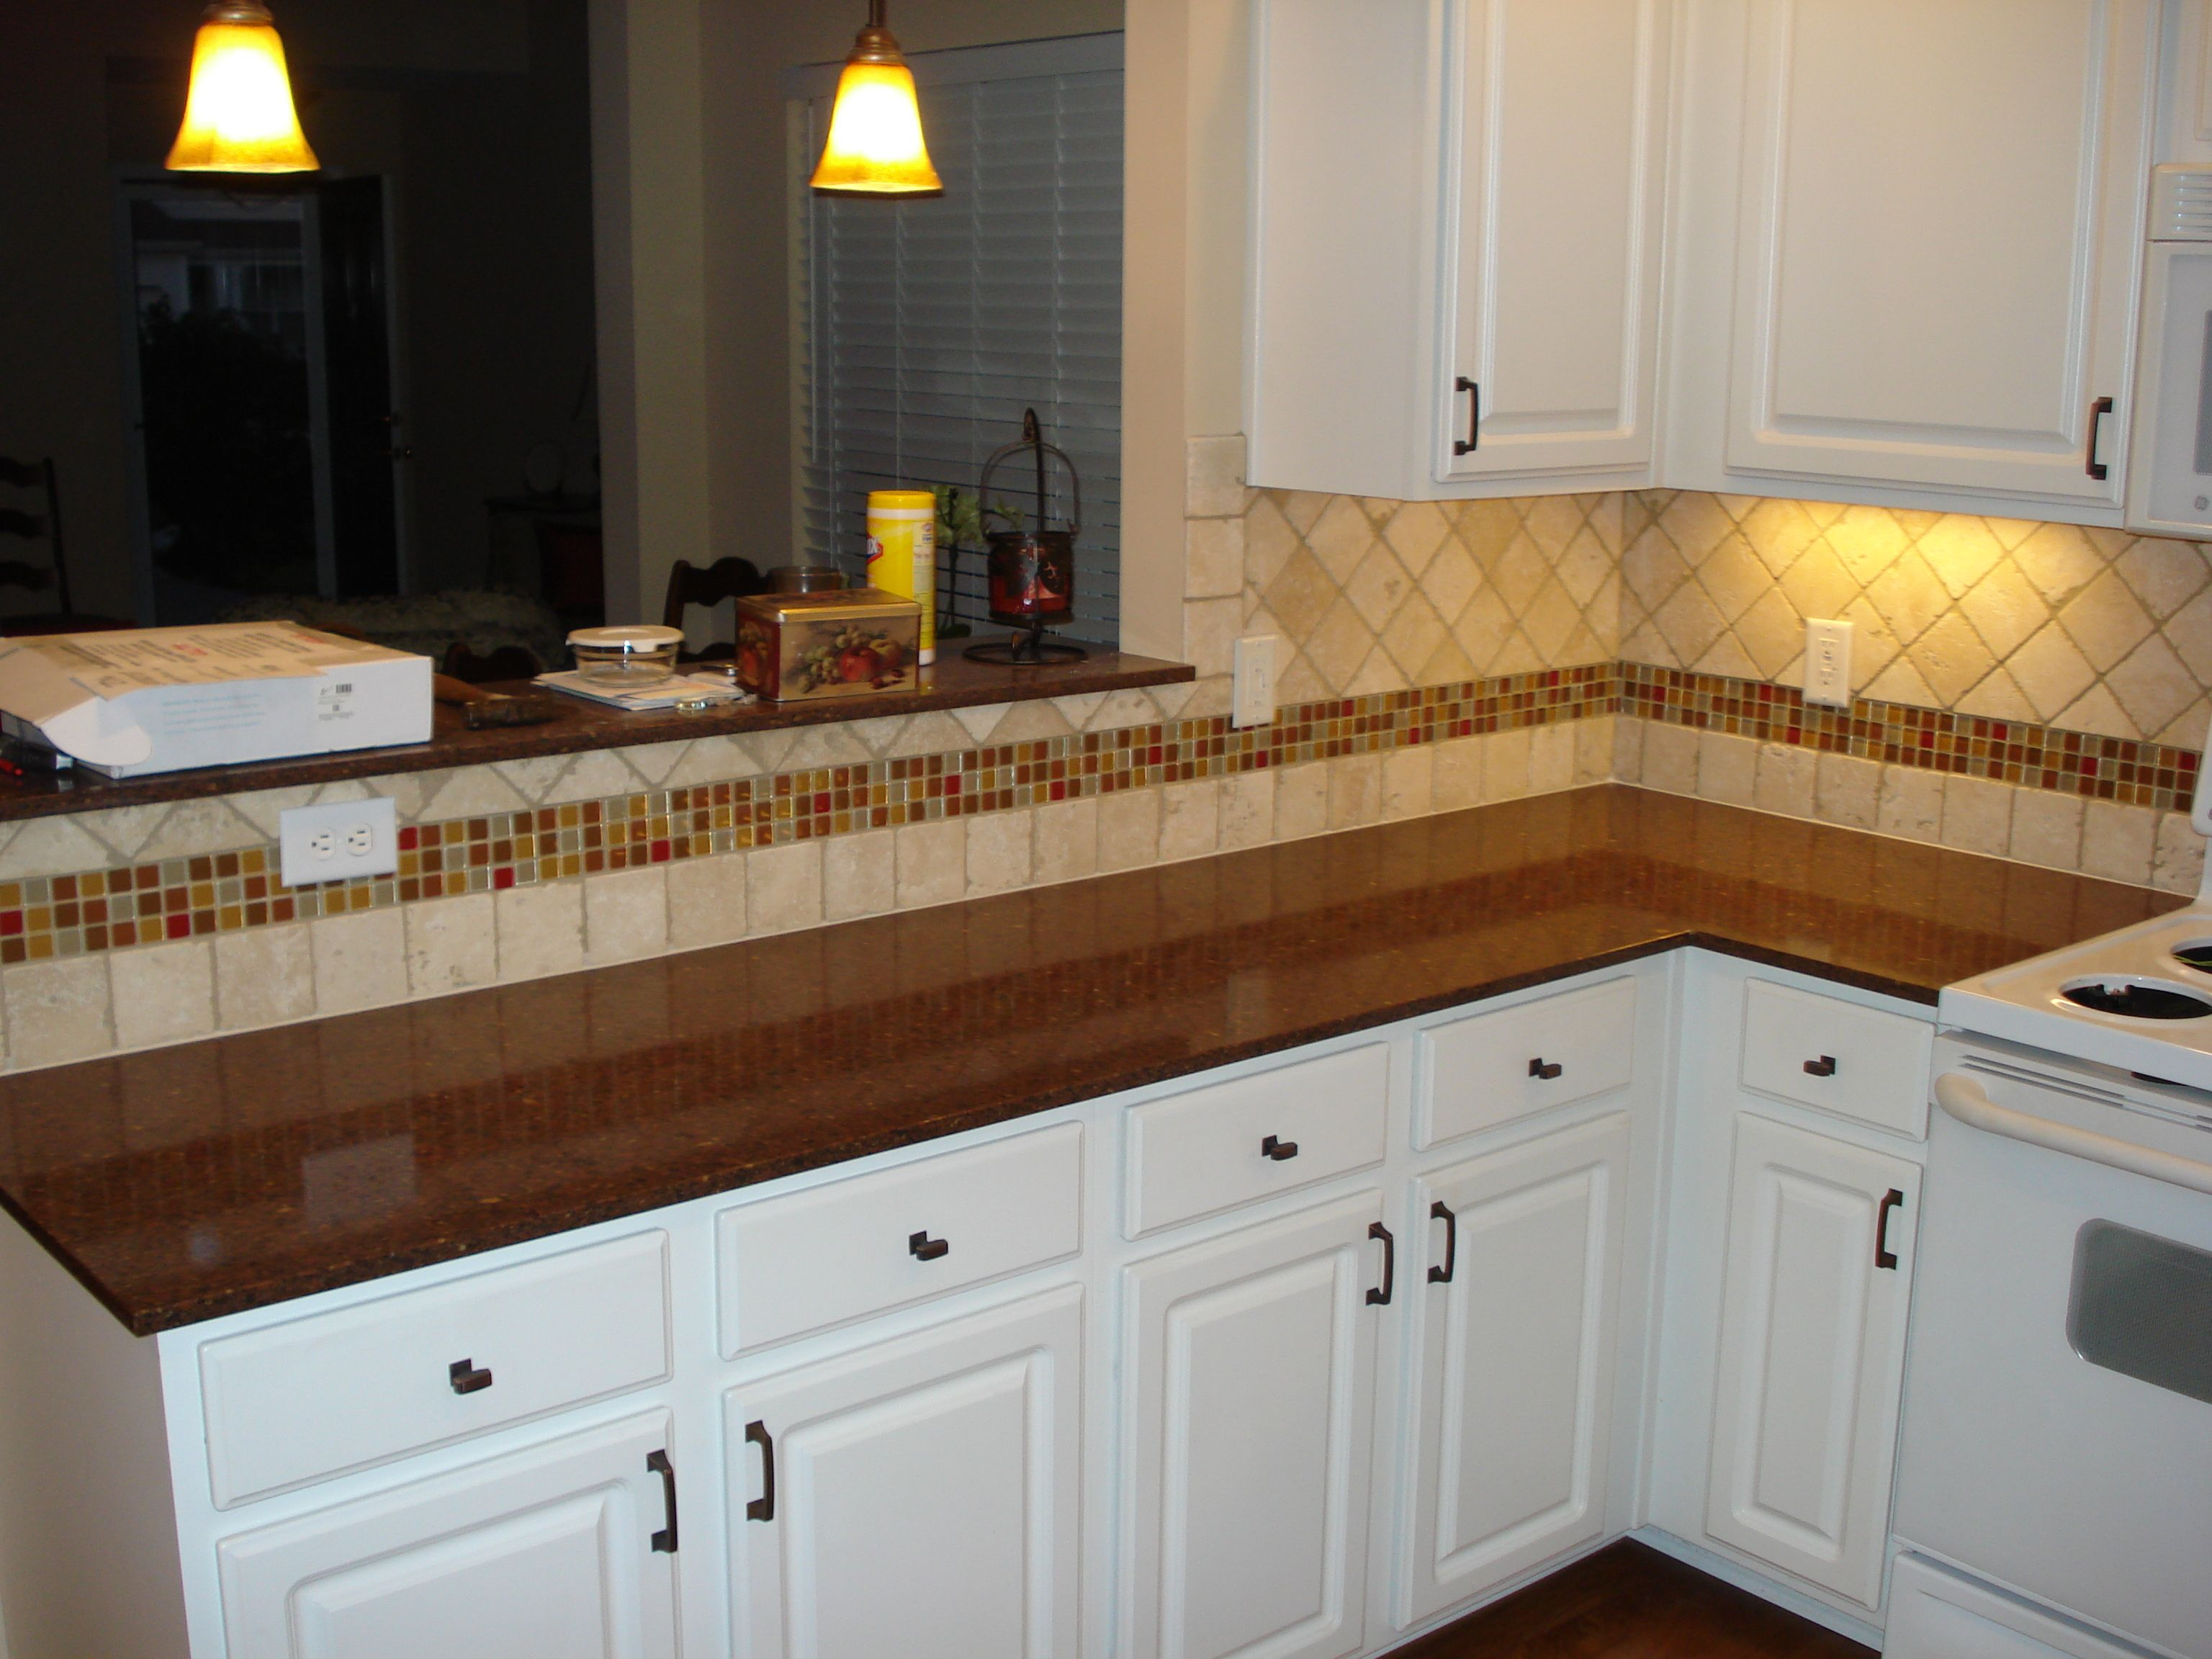 Kitchen Backsplash Accents tumbled marble backsplash with multi-colored glass accent strip